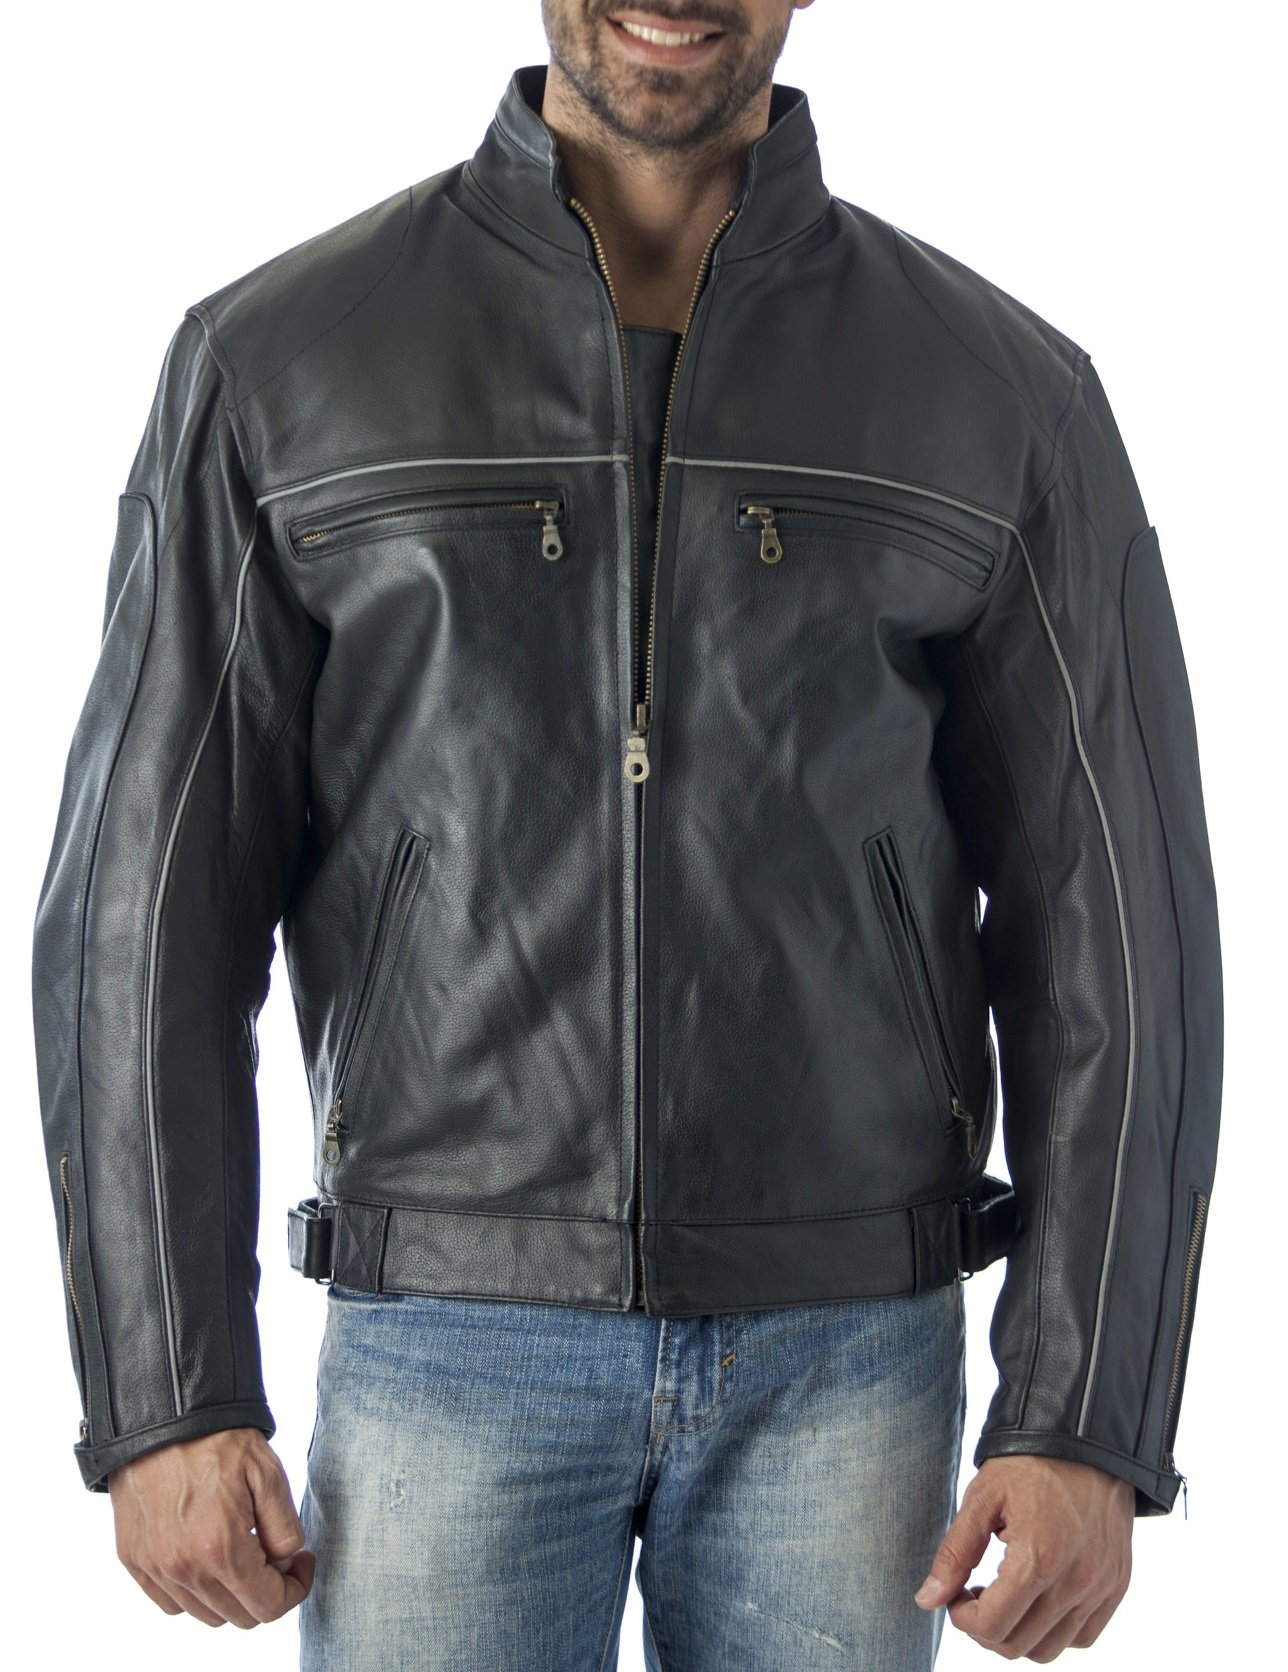 Reed Mens Vented Leather Motorcycle Jacket with Light Reflector (4X) by REED